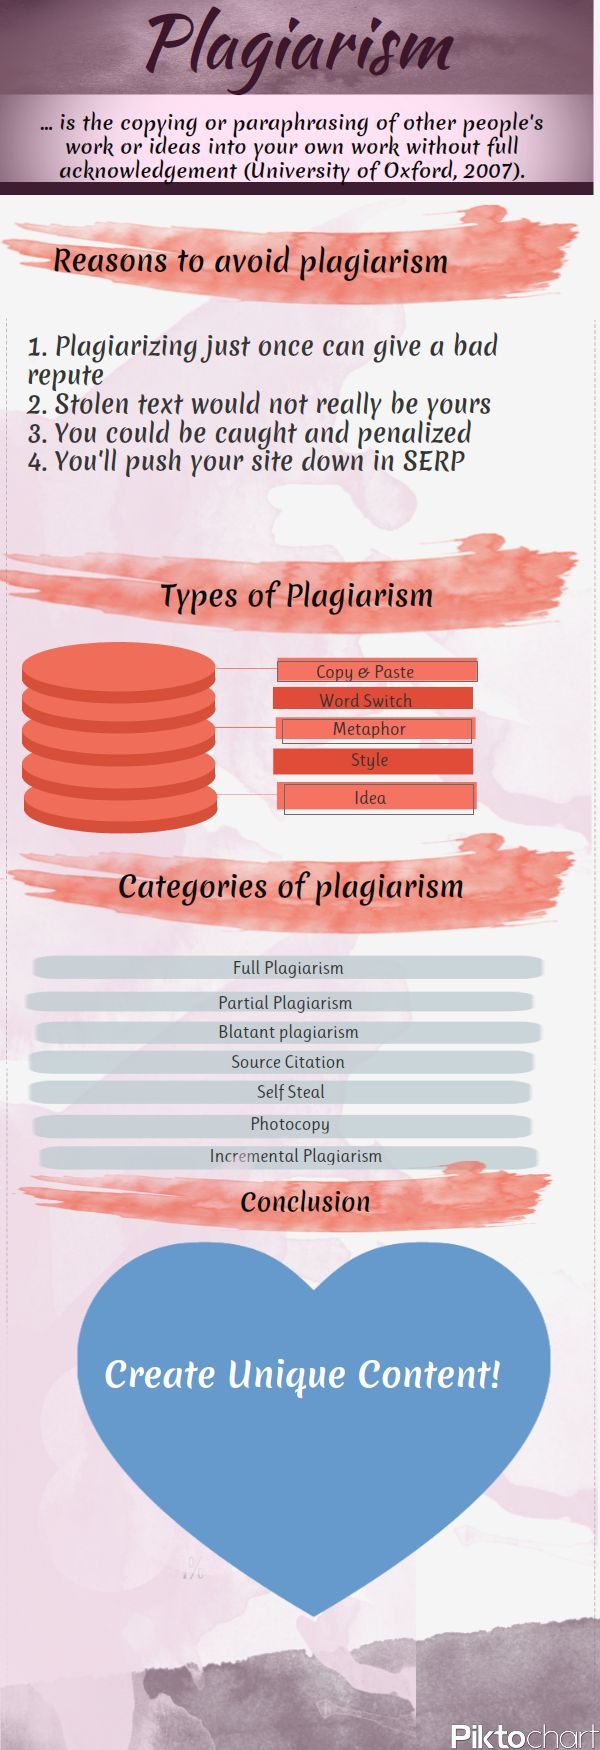 Find out the definition, main types and categories of plagiarism. Learn reasons to avoid plagiarizing.